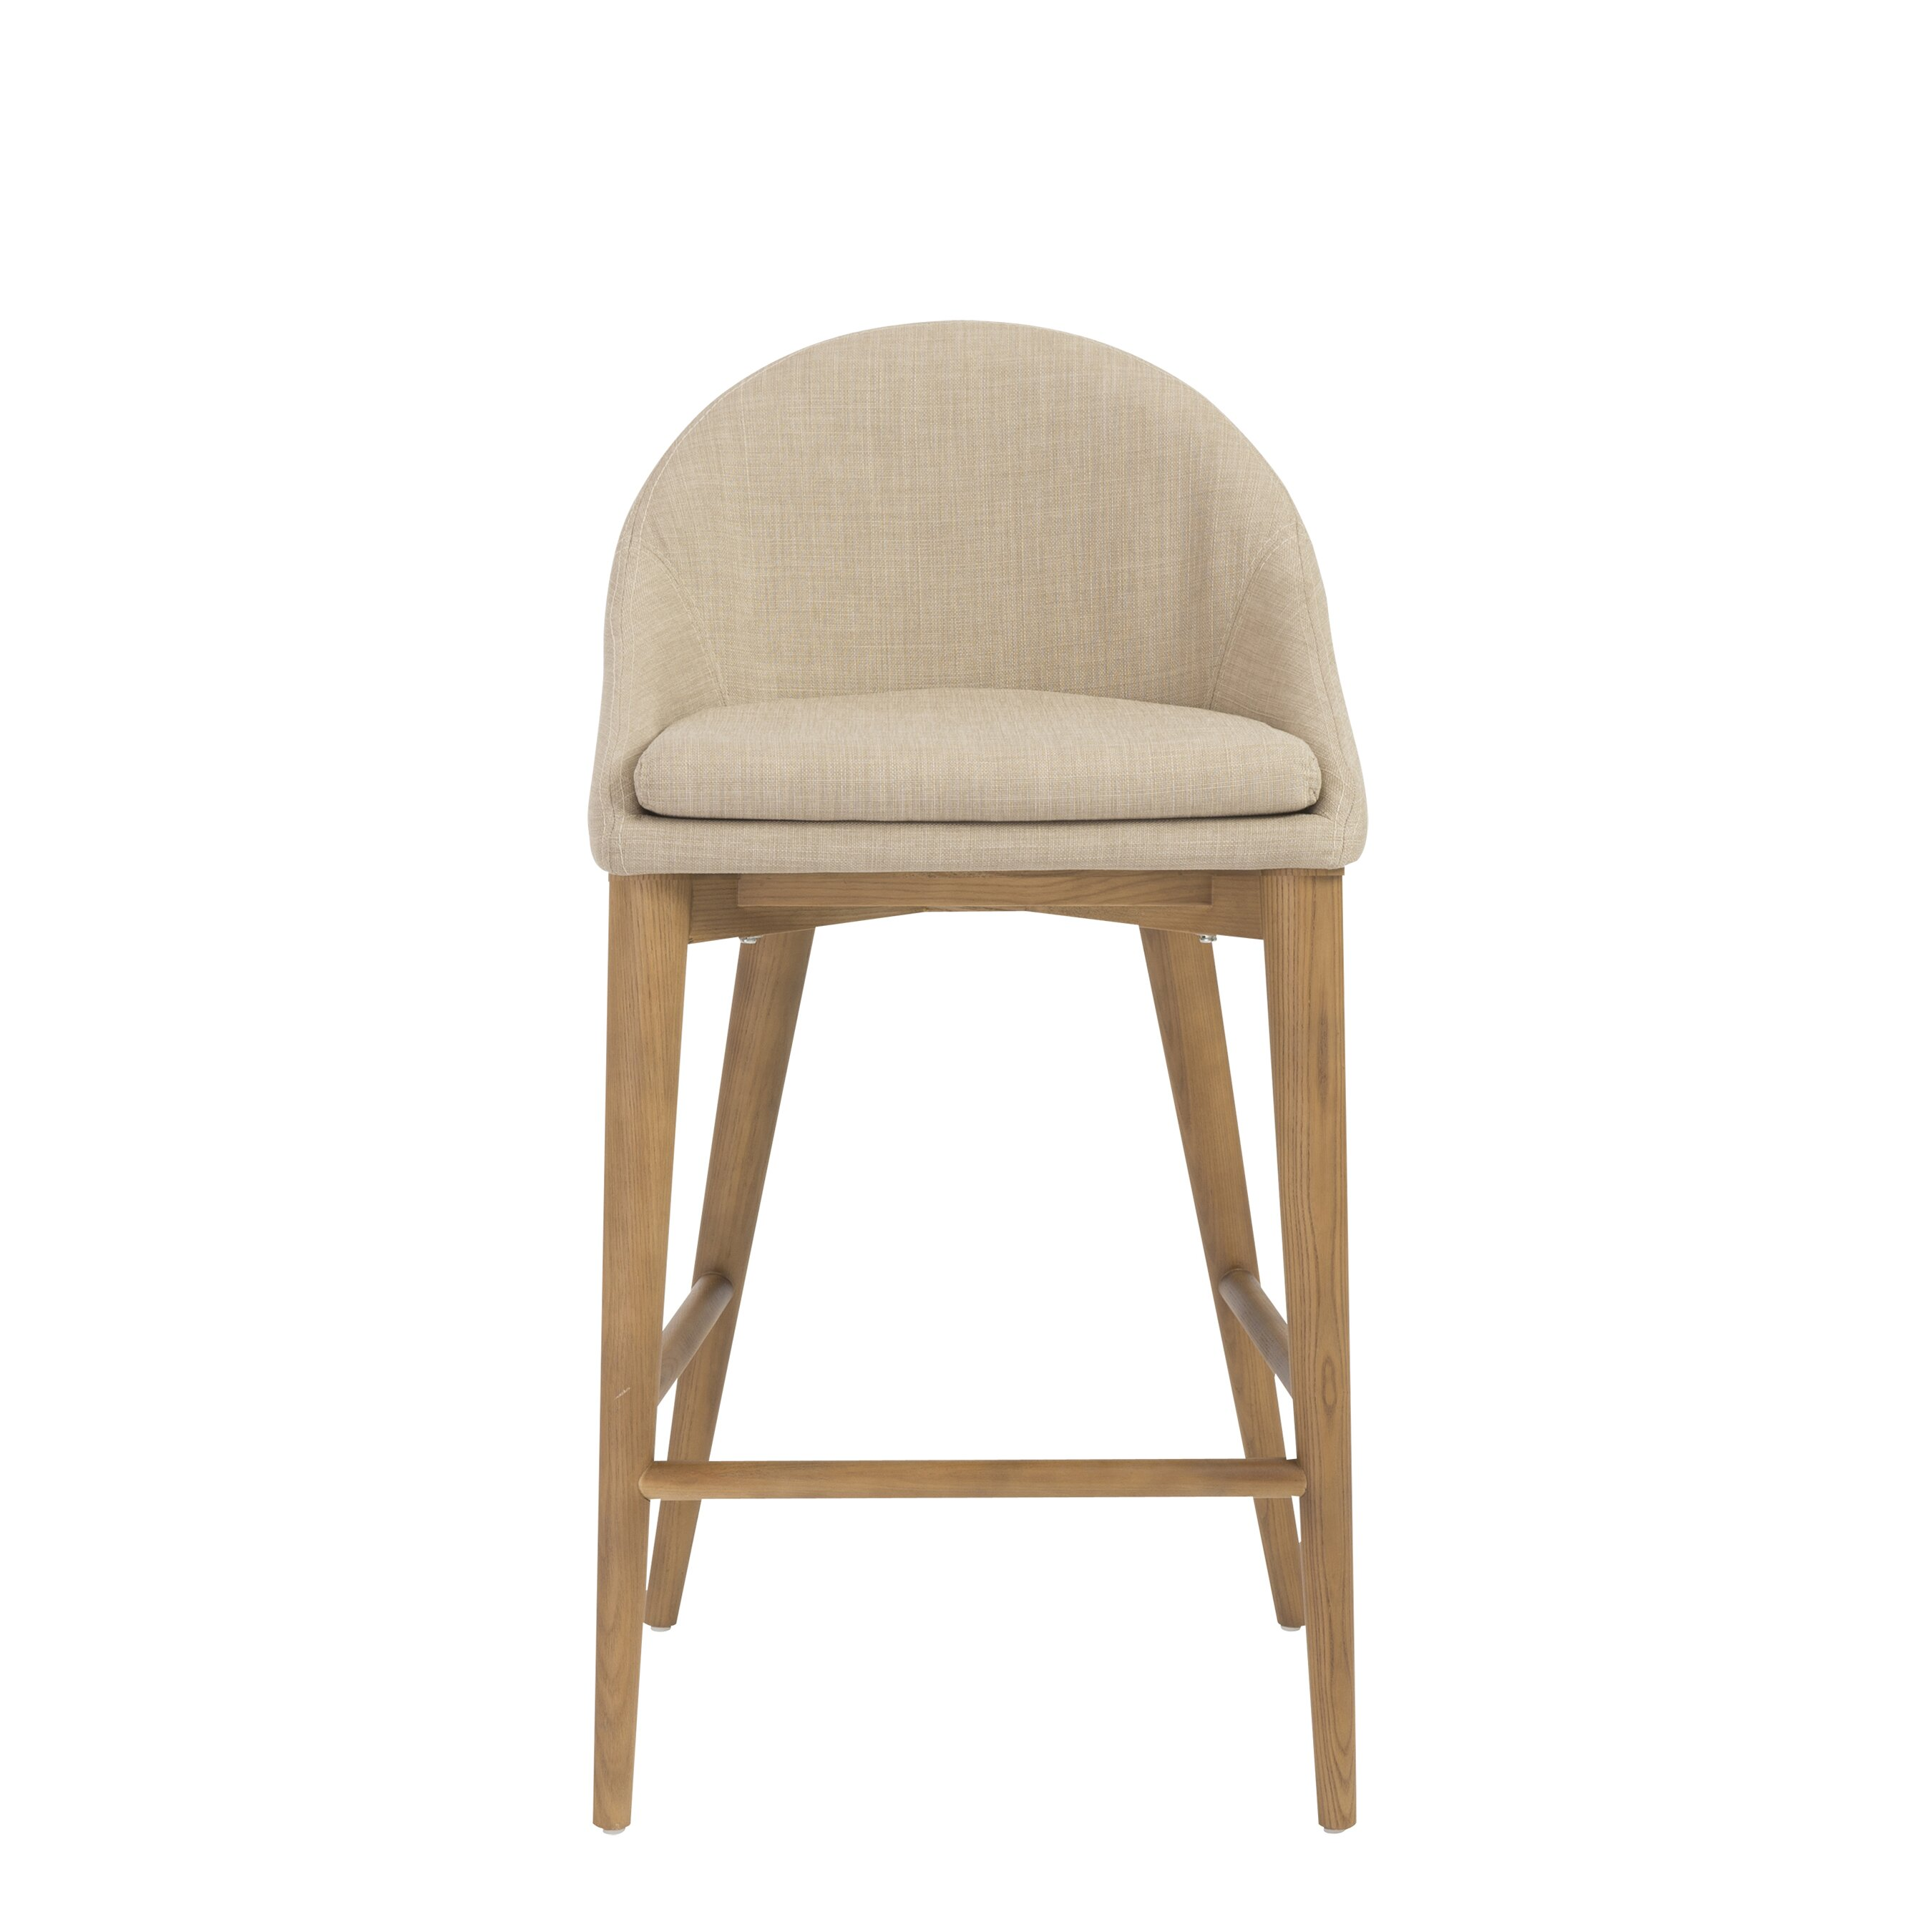 "Eurostyle Baruch 26"" Bar Stool & Reviews"